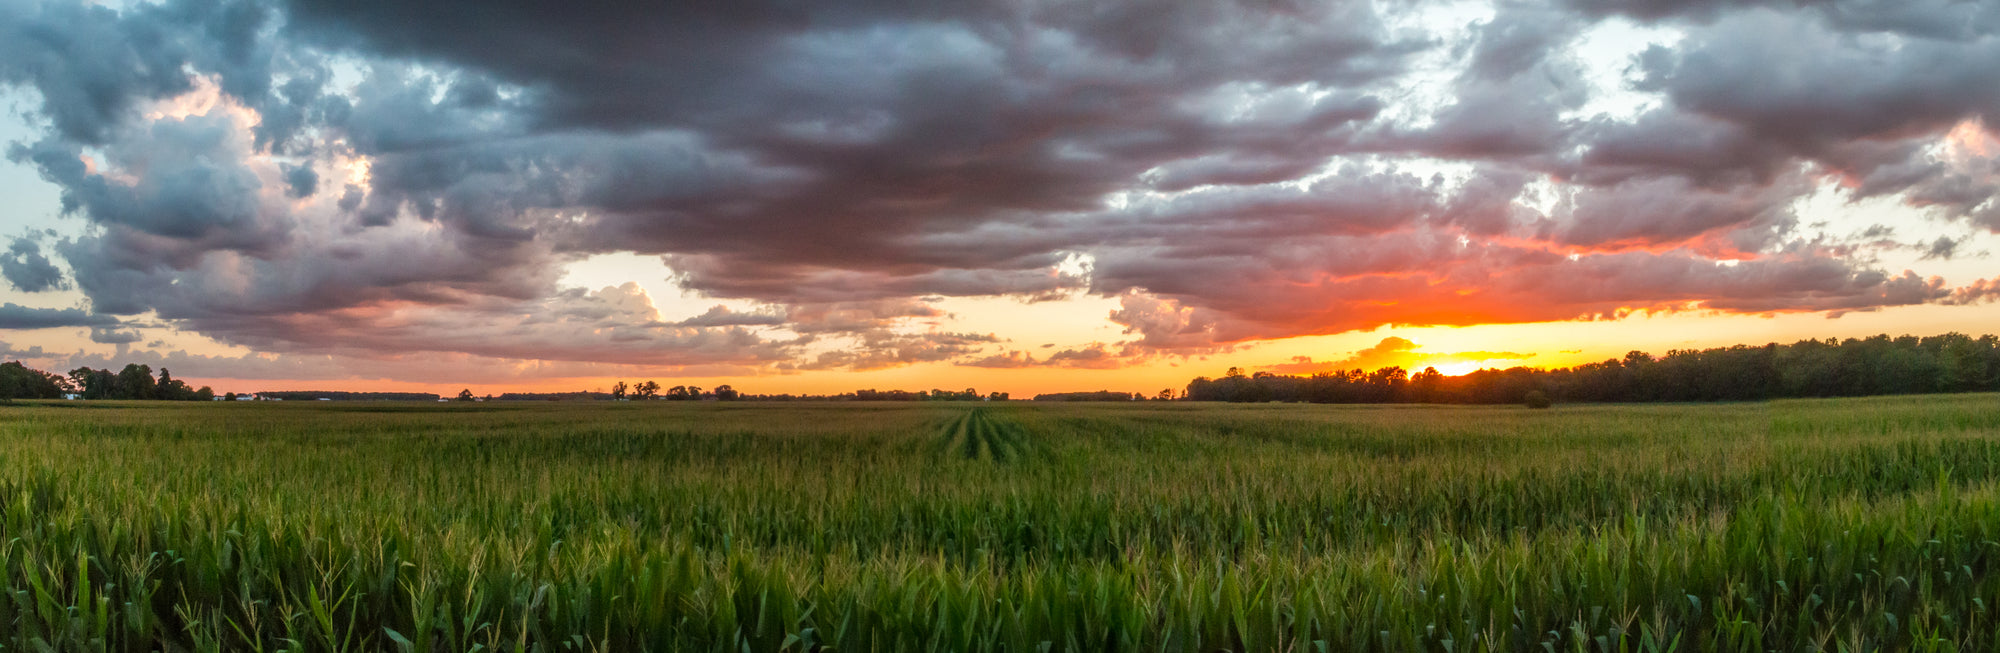 Ohio Cornfield Sunset (0263)